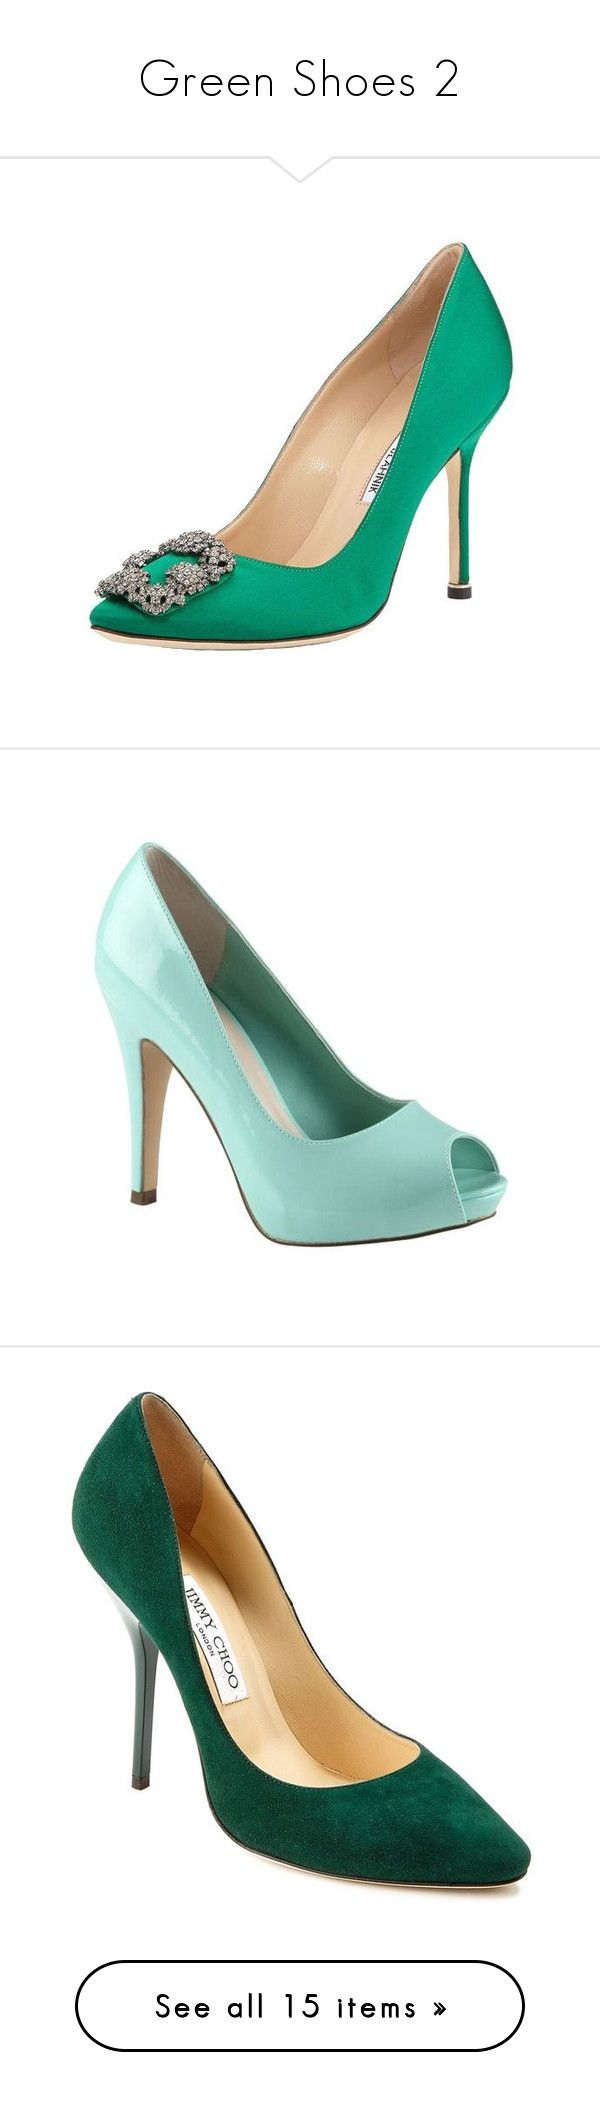 Green Shoes 2 By Franceseattle Liked On Polyvore Featuring Pumps